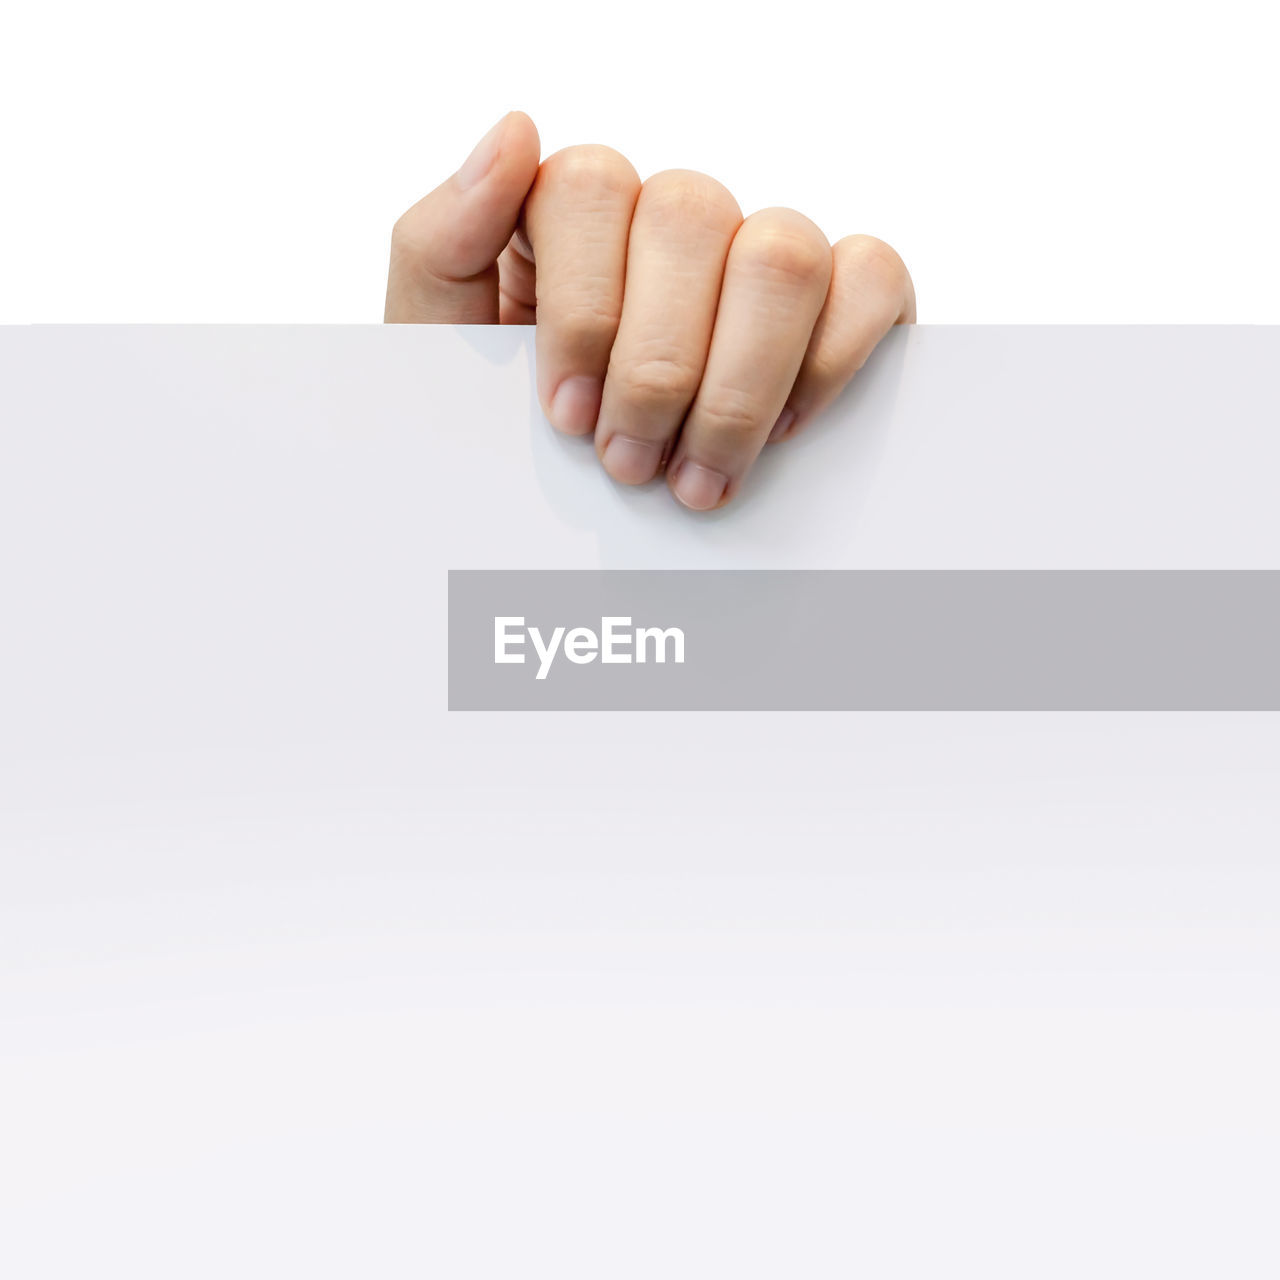 human hand, human body part, hand, white background, copy space, studio shot, one person, finger, human finger, body part, gesturing, indoors, communication, paper, close-up, unrecognizable person, blank, white color, empty, message